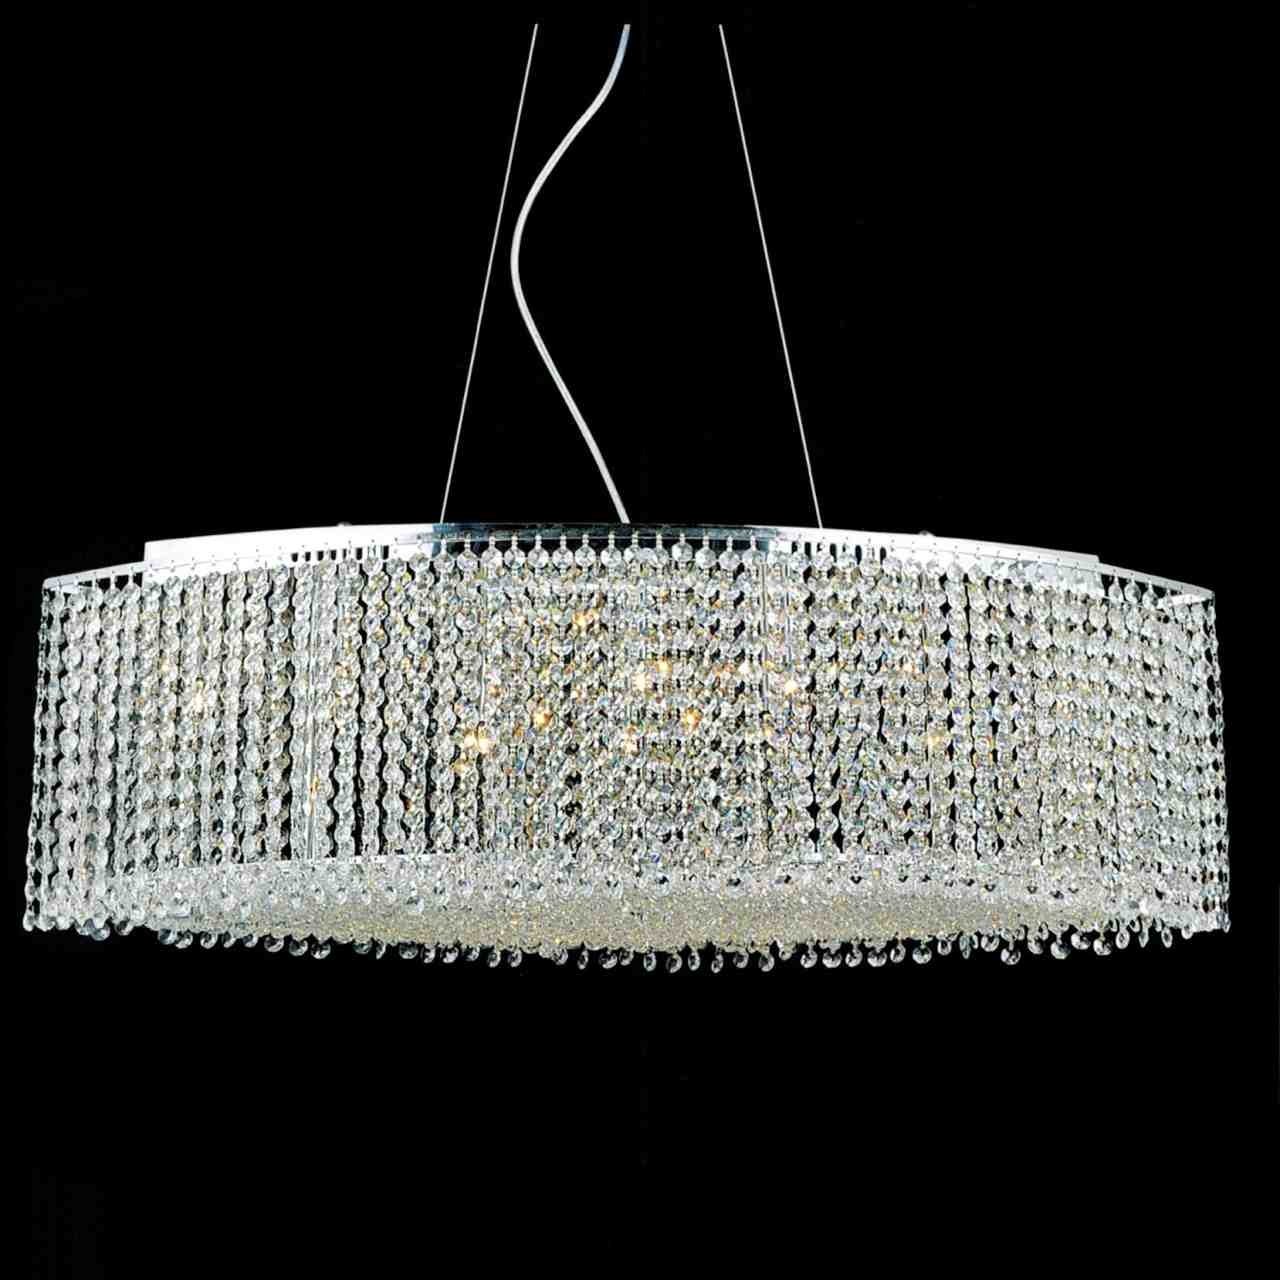 Brizzo Lighting Stores 27 Rainbow Modern Rectangular Crystal Throughout Crystal Chrome Chandeliers (Image 6 of 25)